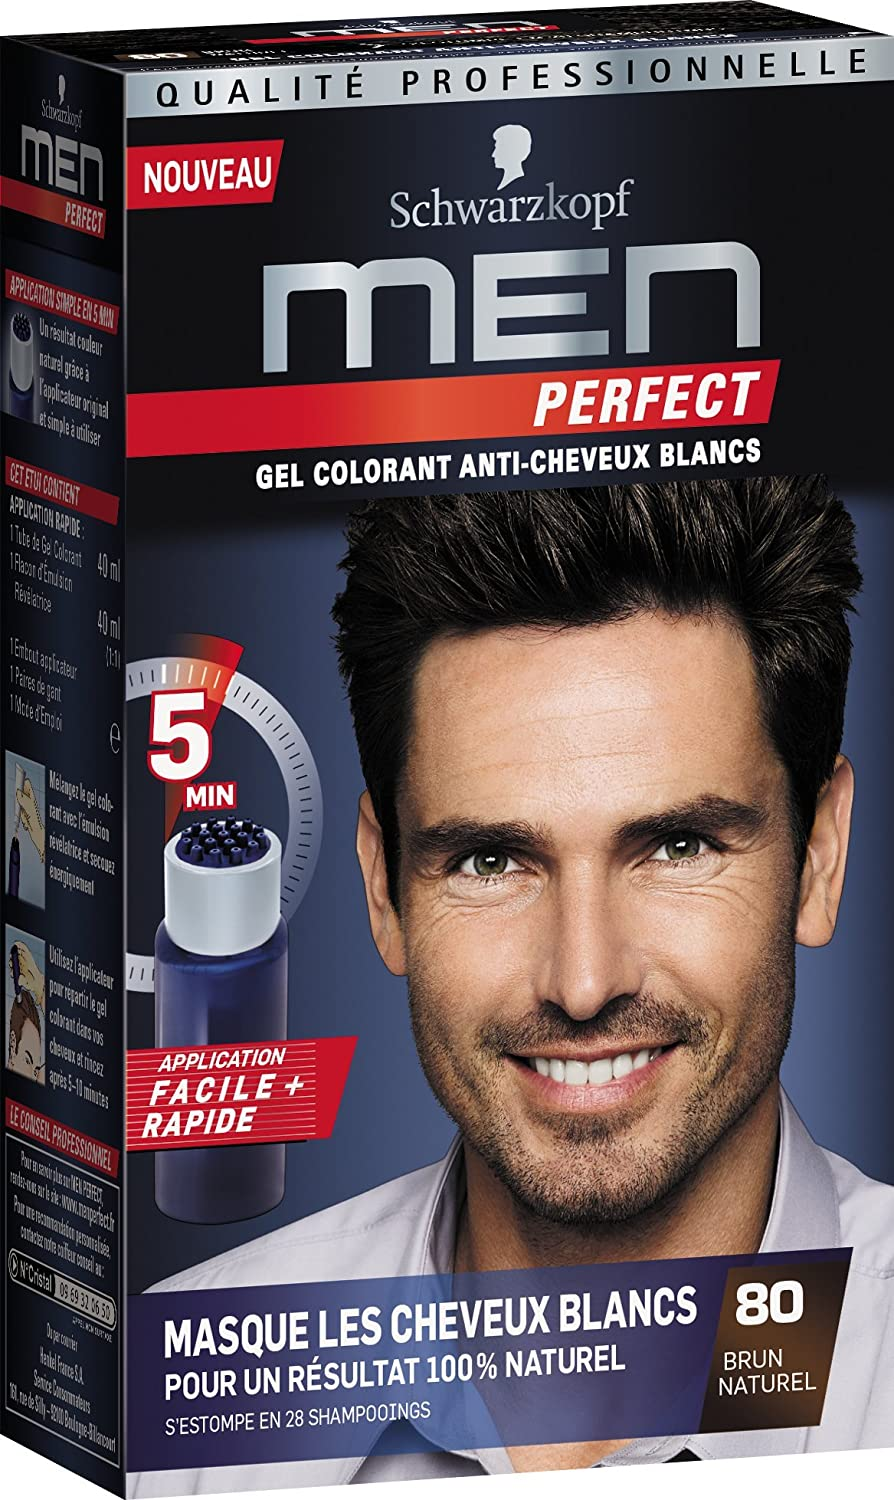 schwarzkopf men perfect gel colorant anti cheveux blancs brun naturel 80 amazonfr hygine et soins du corps - Shampoing Colorant Homme